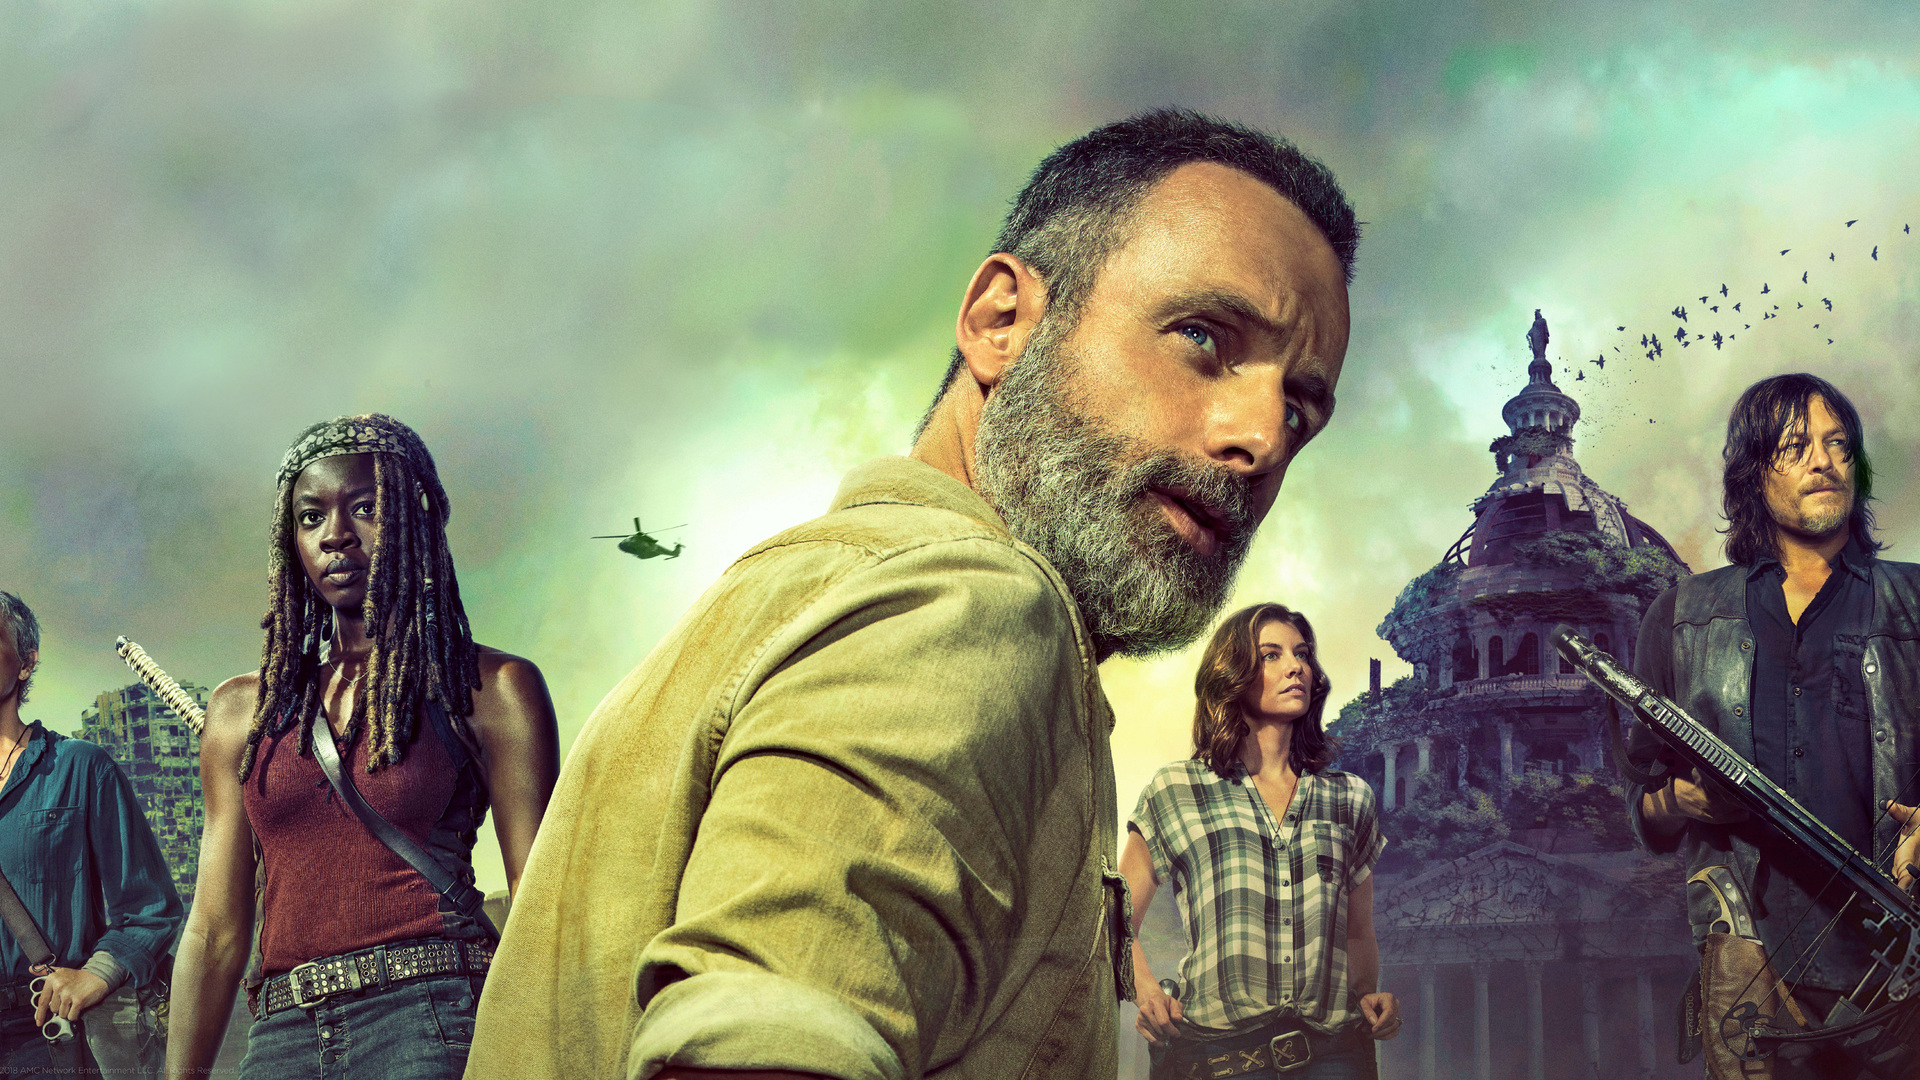 1920x1080 The Walking Dead Season 9 2018 Laptop Full Hd 1080p Hd